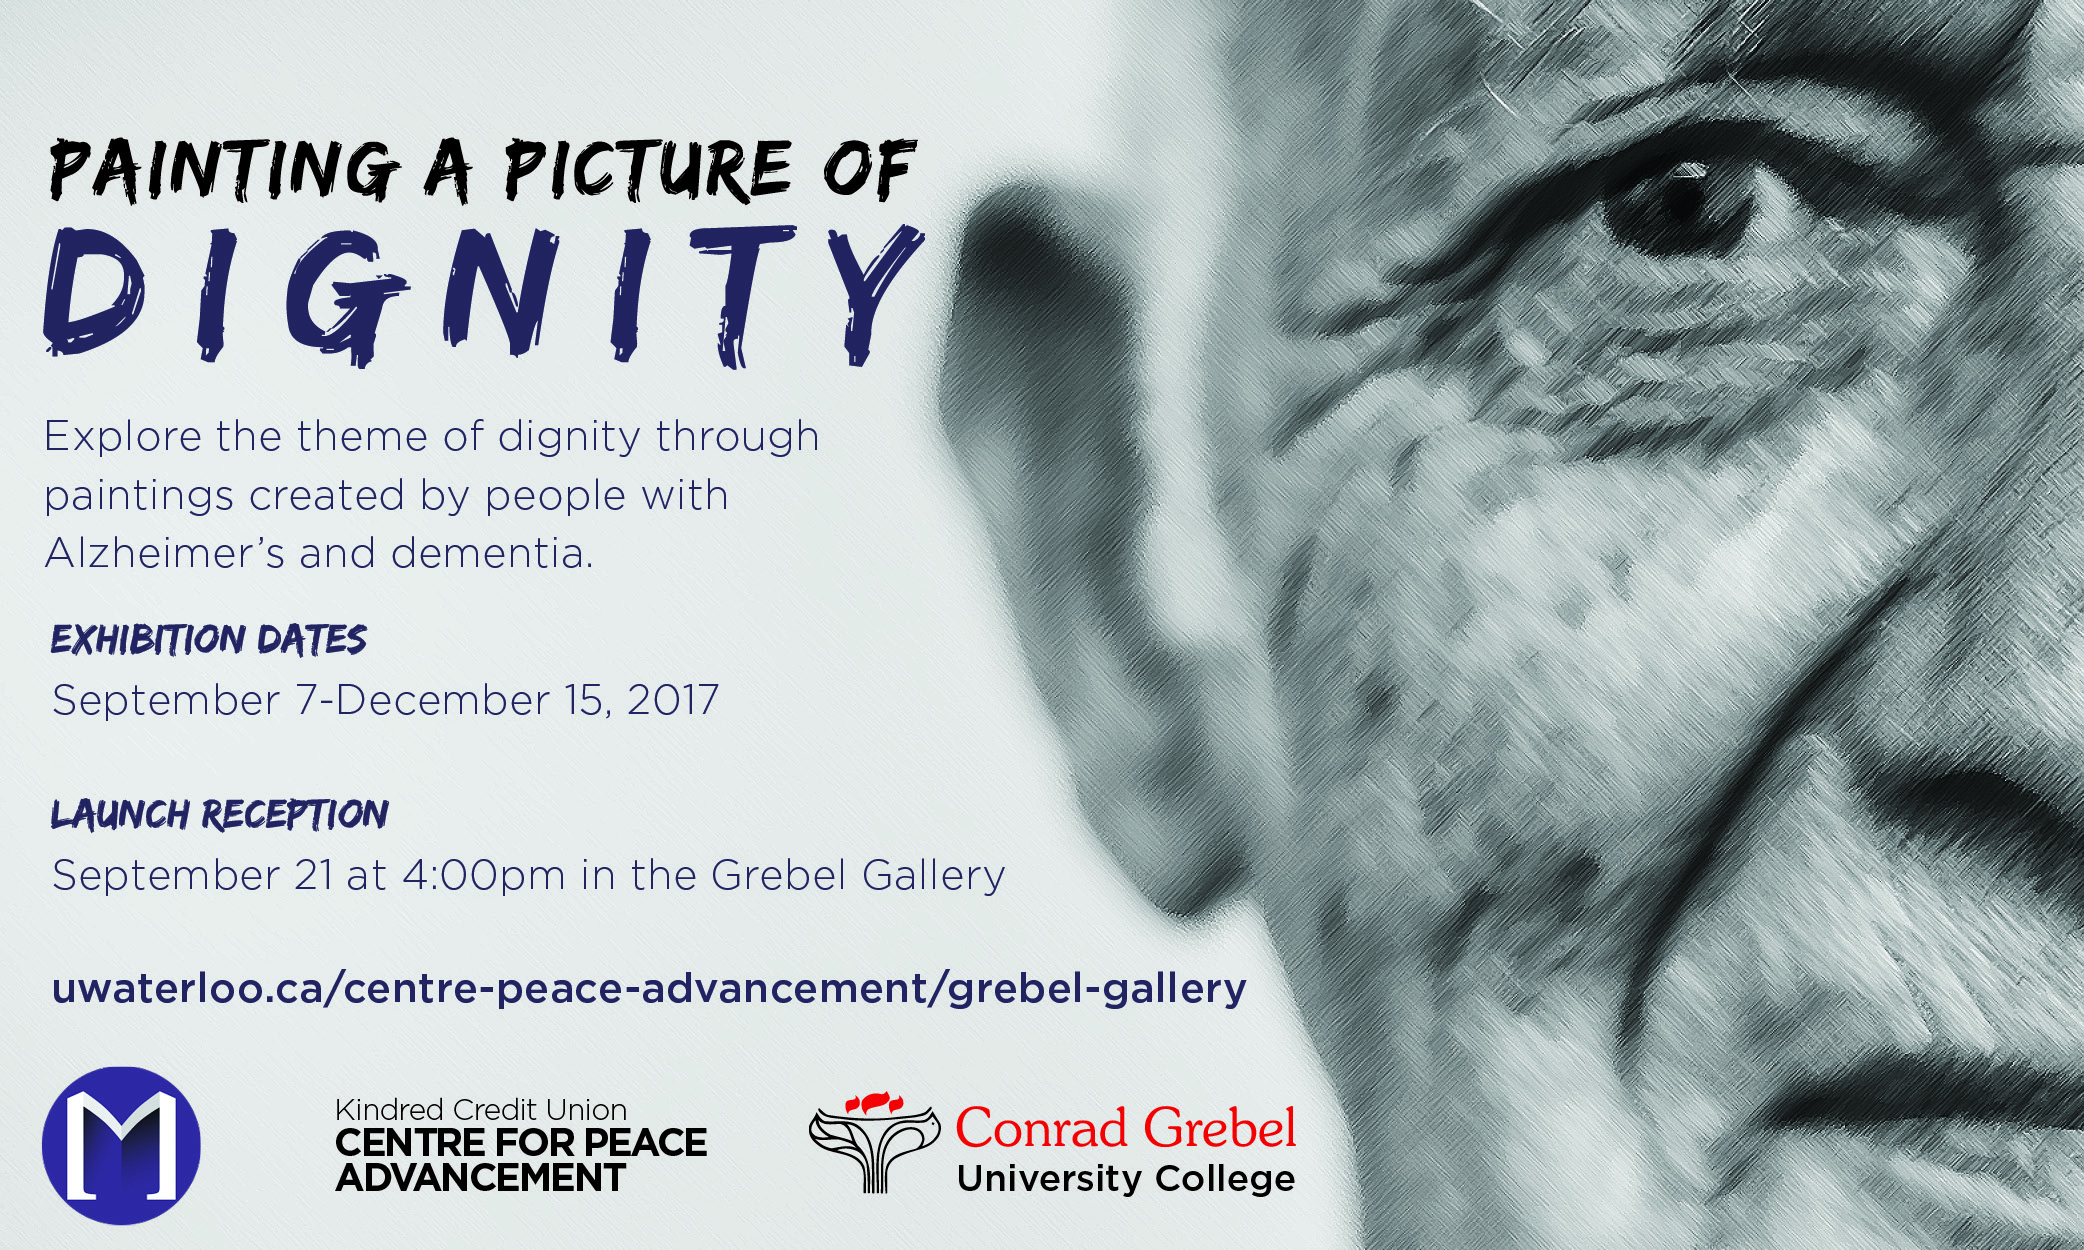 Painting a Picture of Dignity Poster